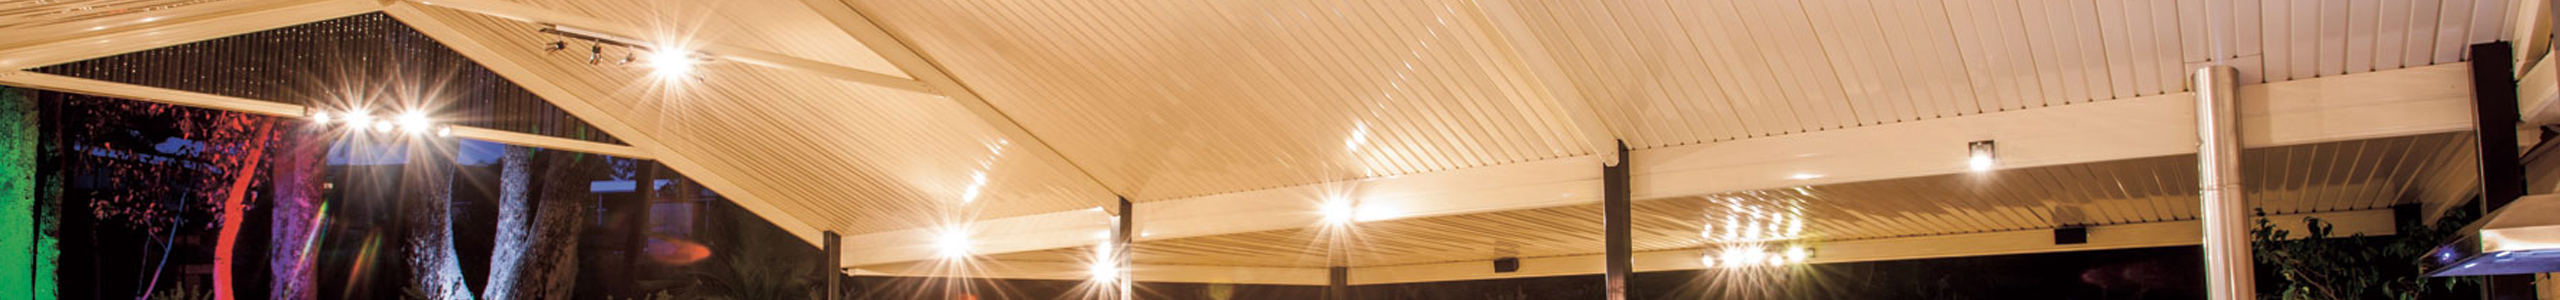 Outback Gable - Stratco